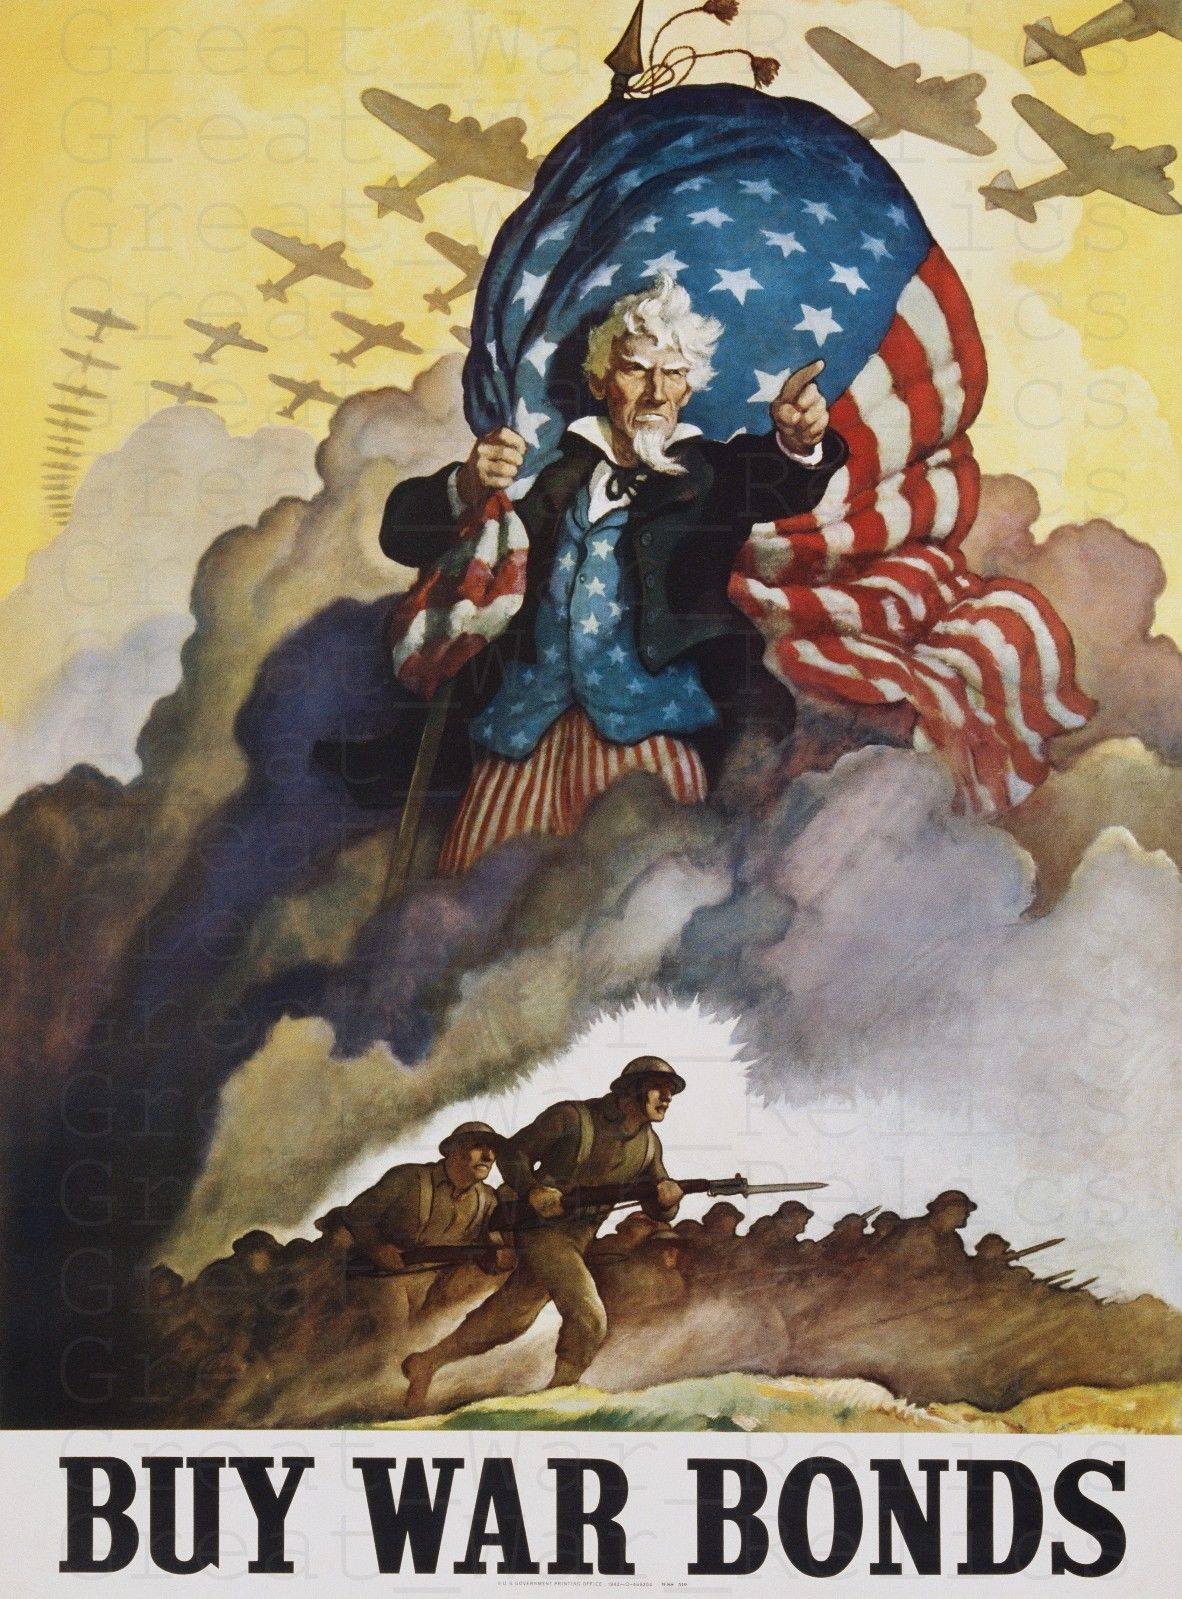 War Army Uncle Sam USA Recruitment Iconic Giant Wall Art Poster Print